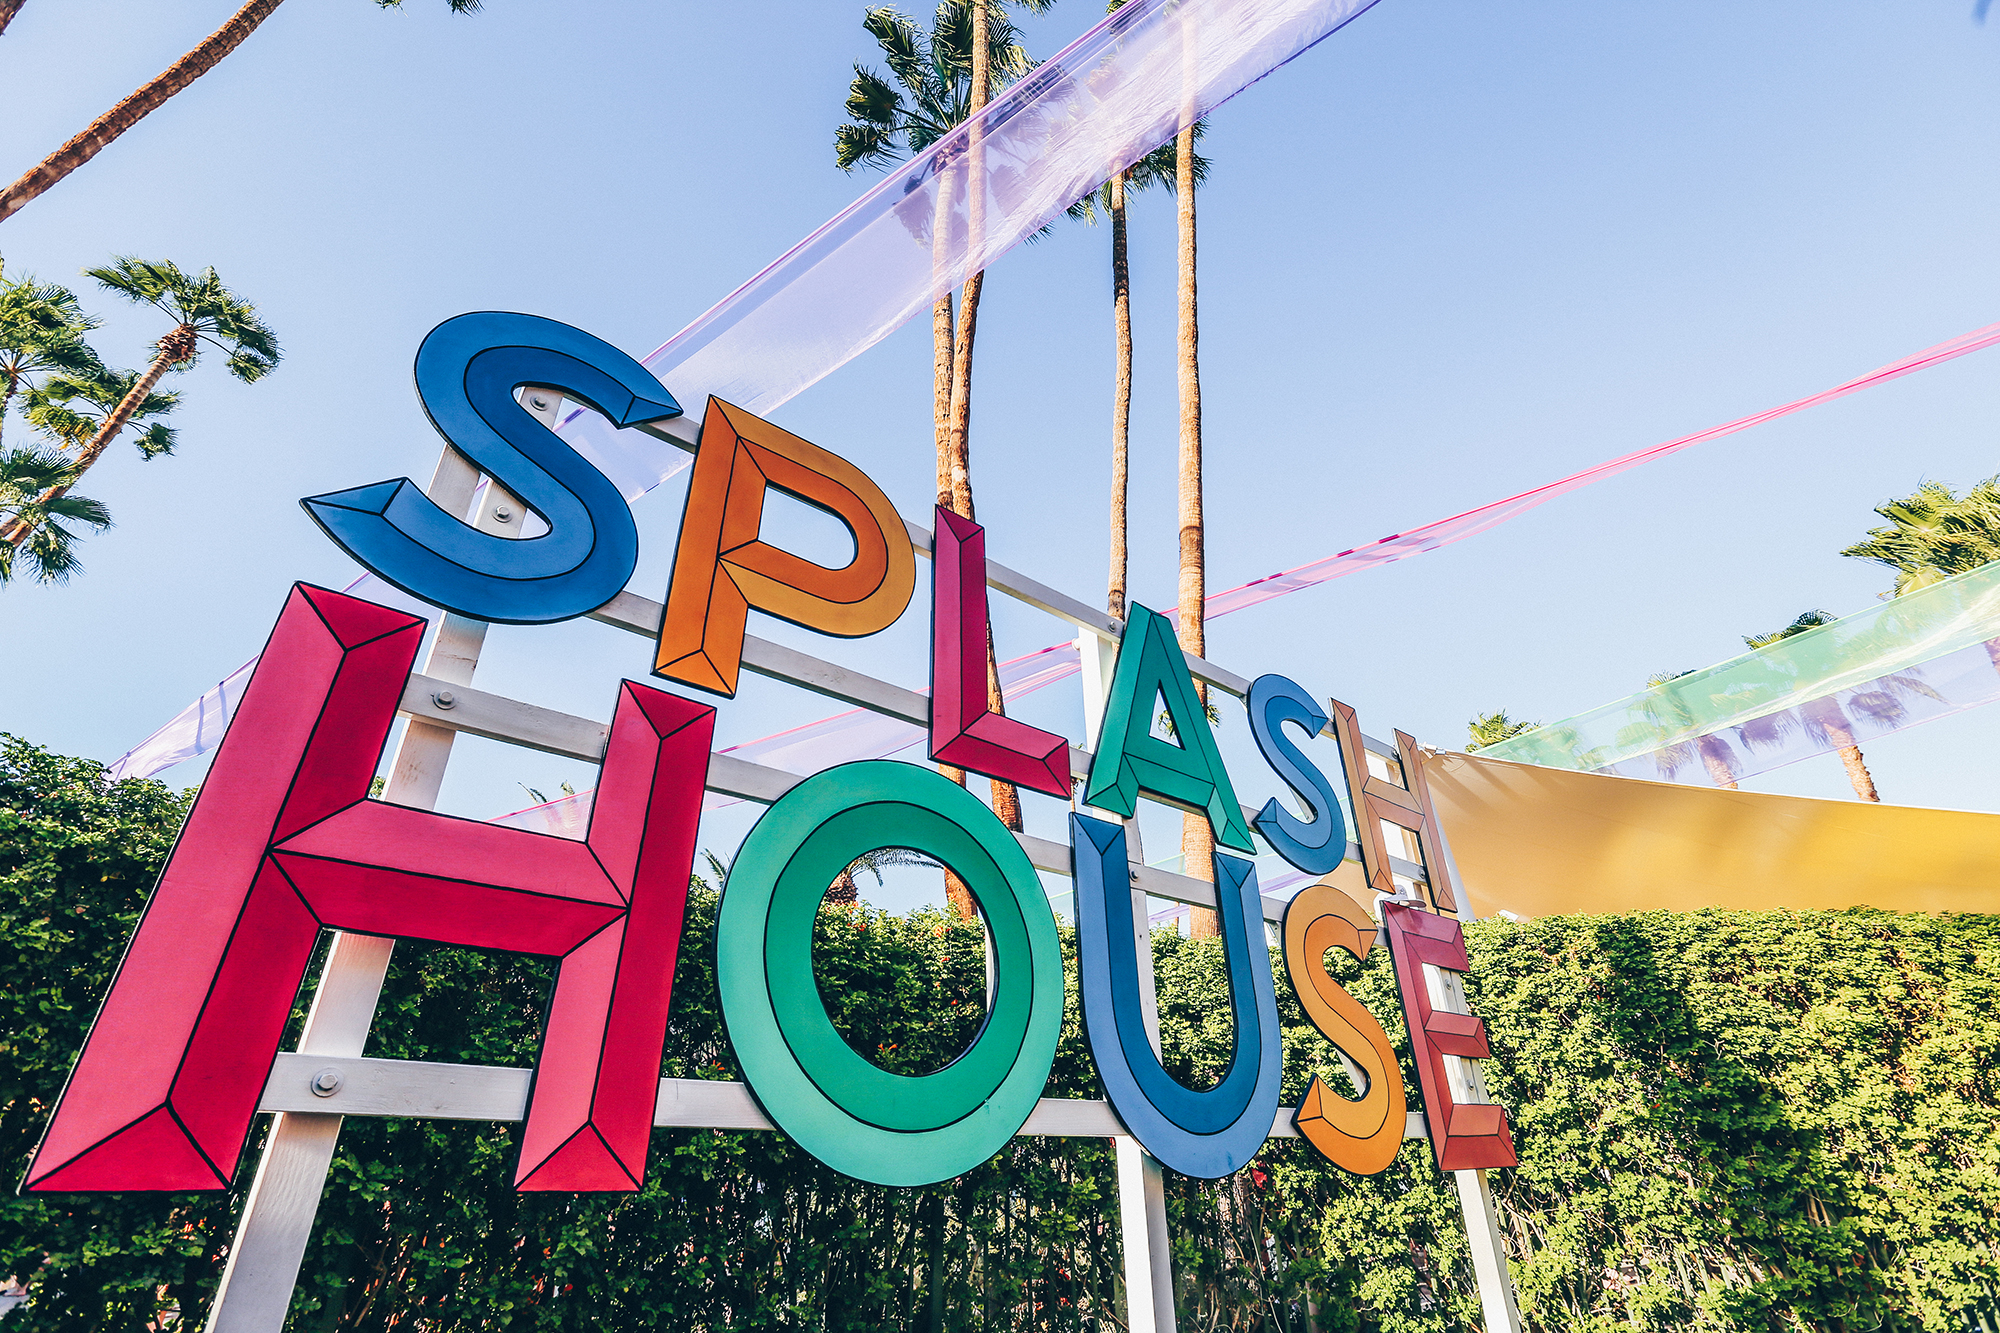 splashhousesign